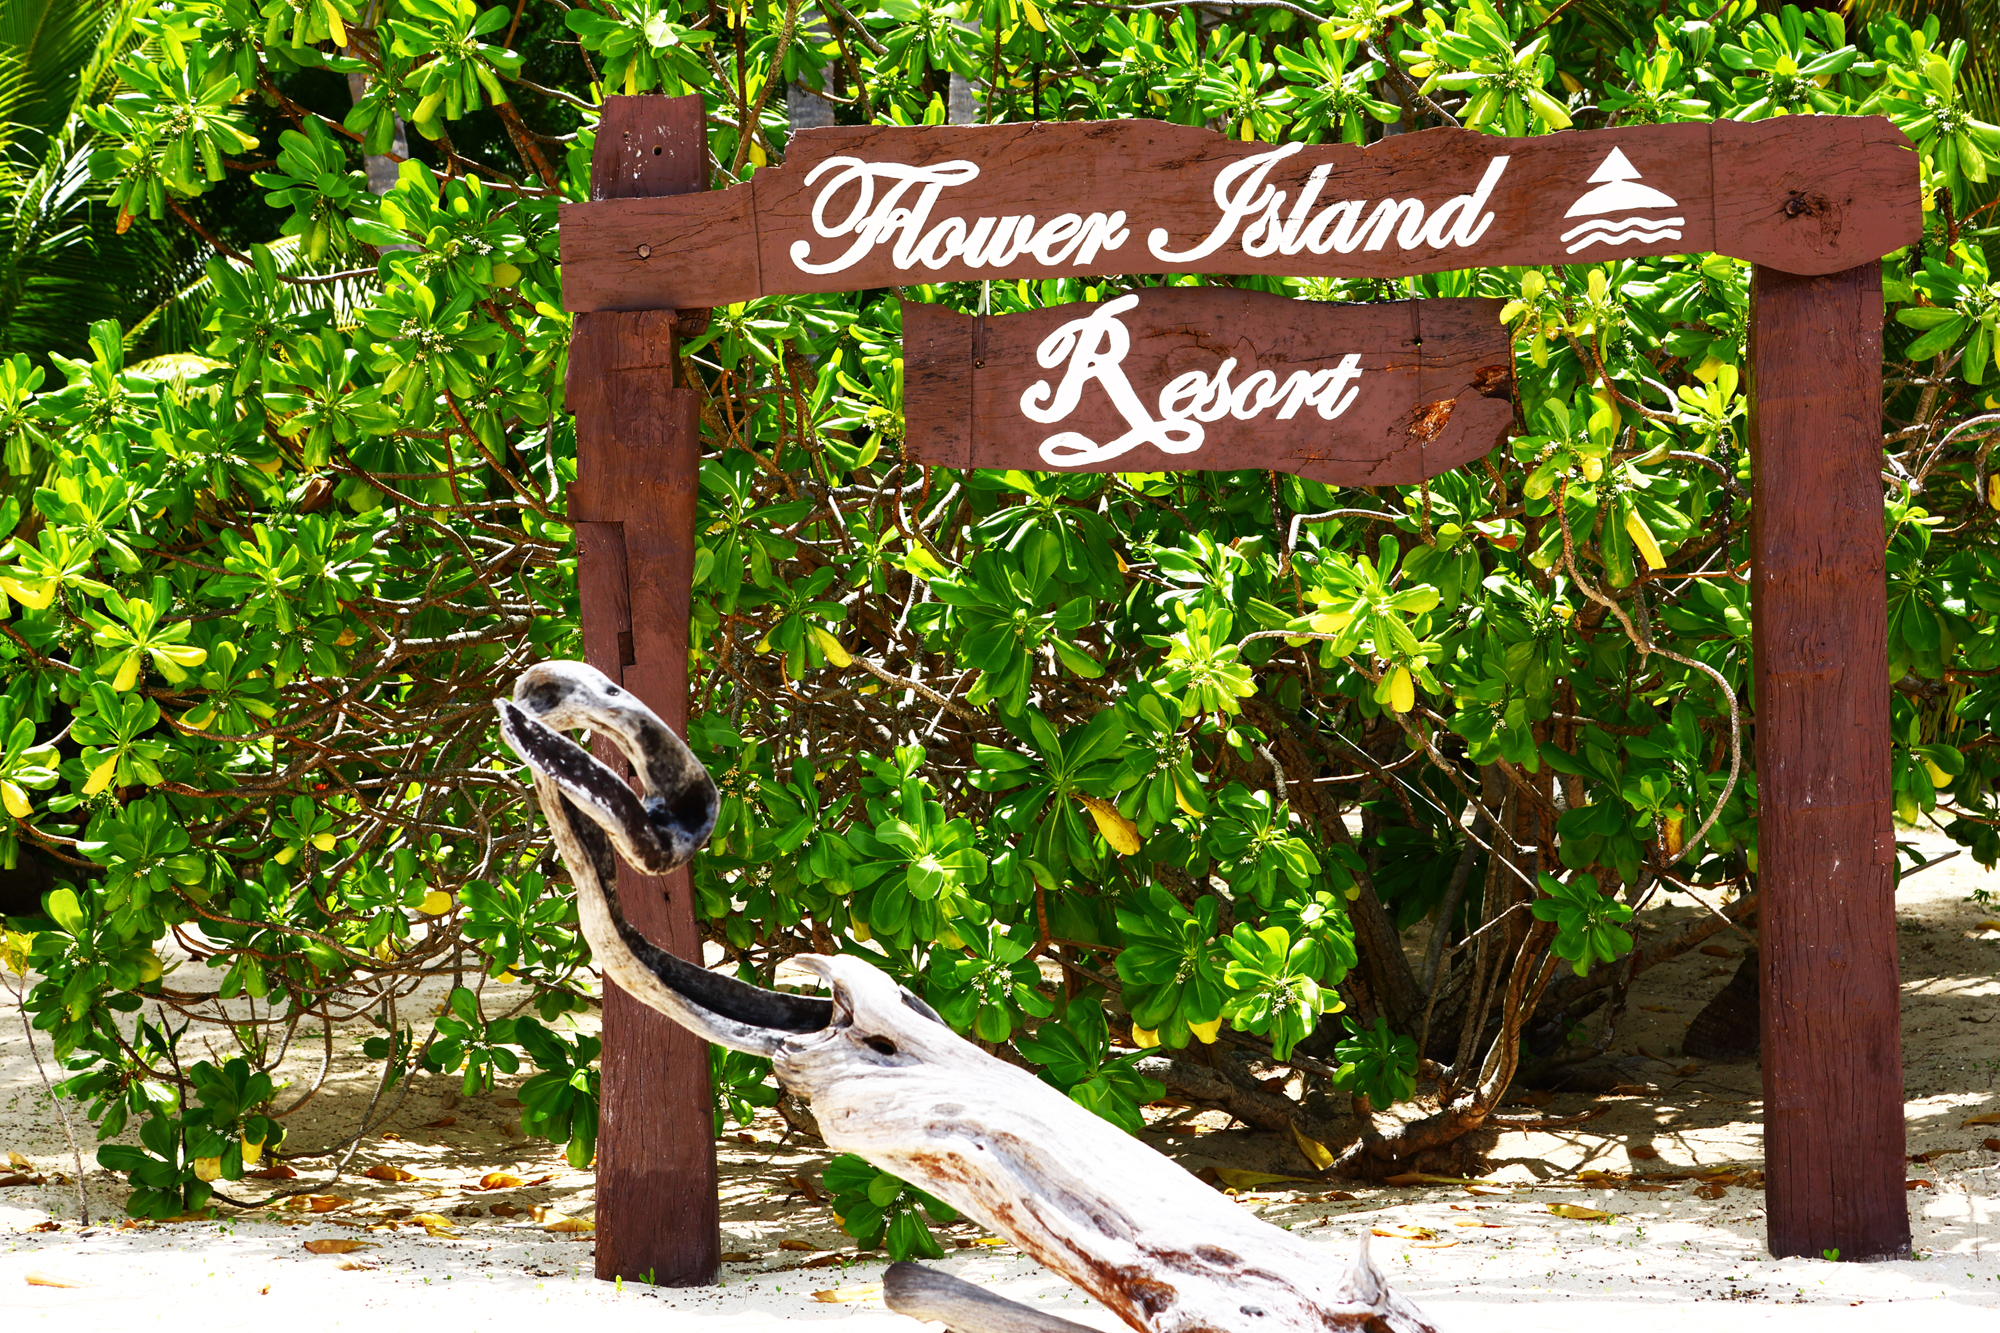 5a8d5366264e9-flower_island_resort_3